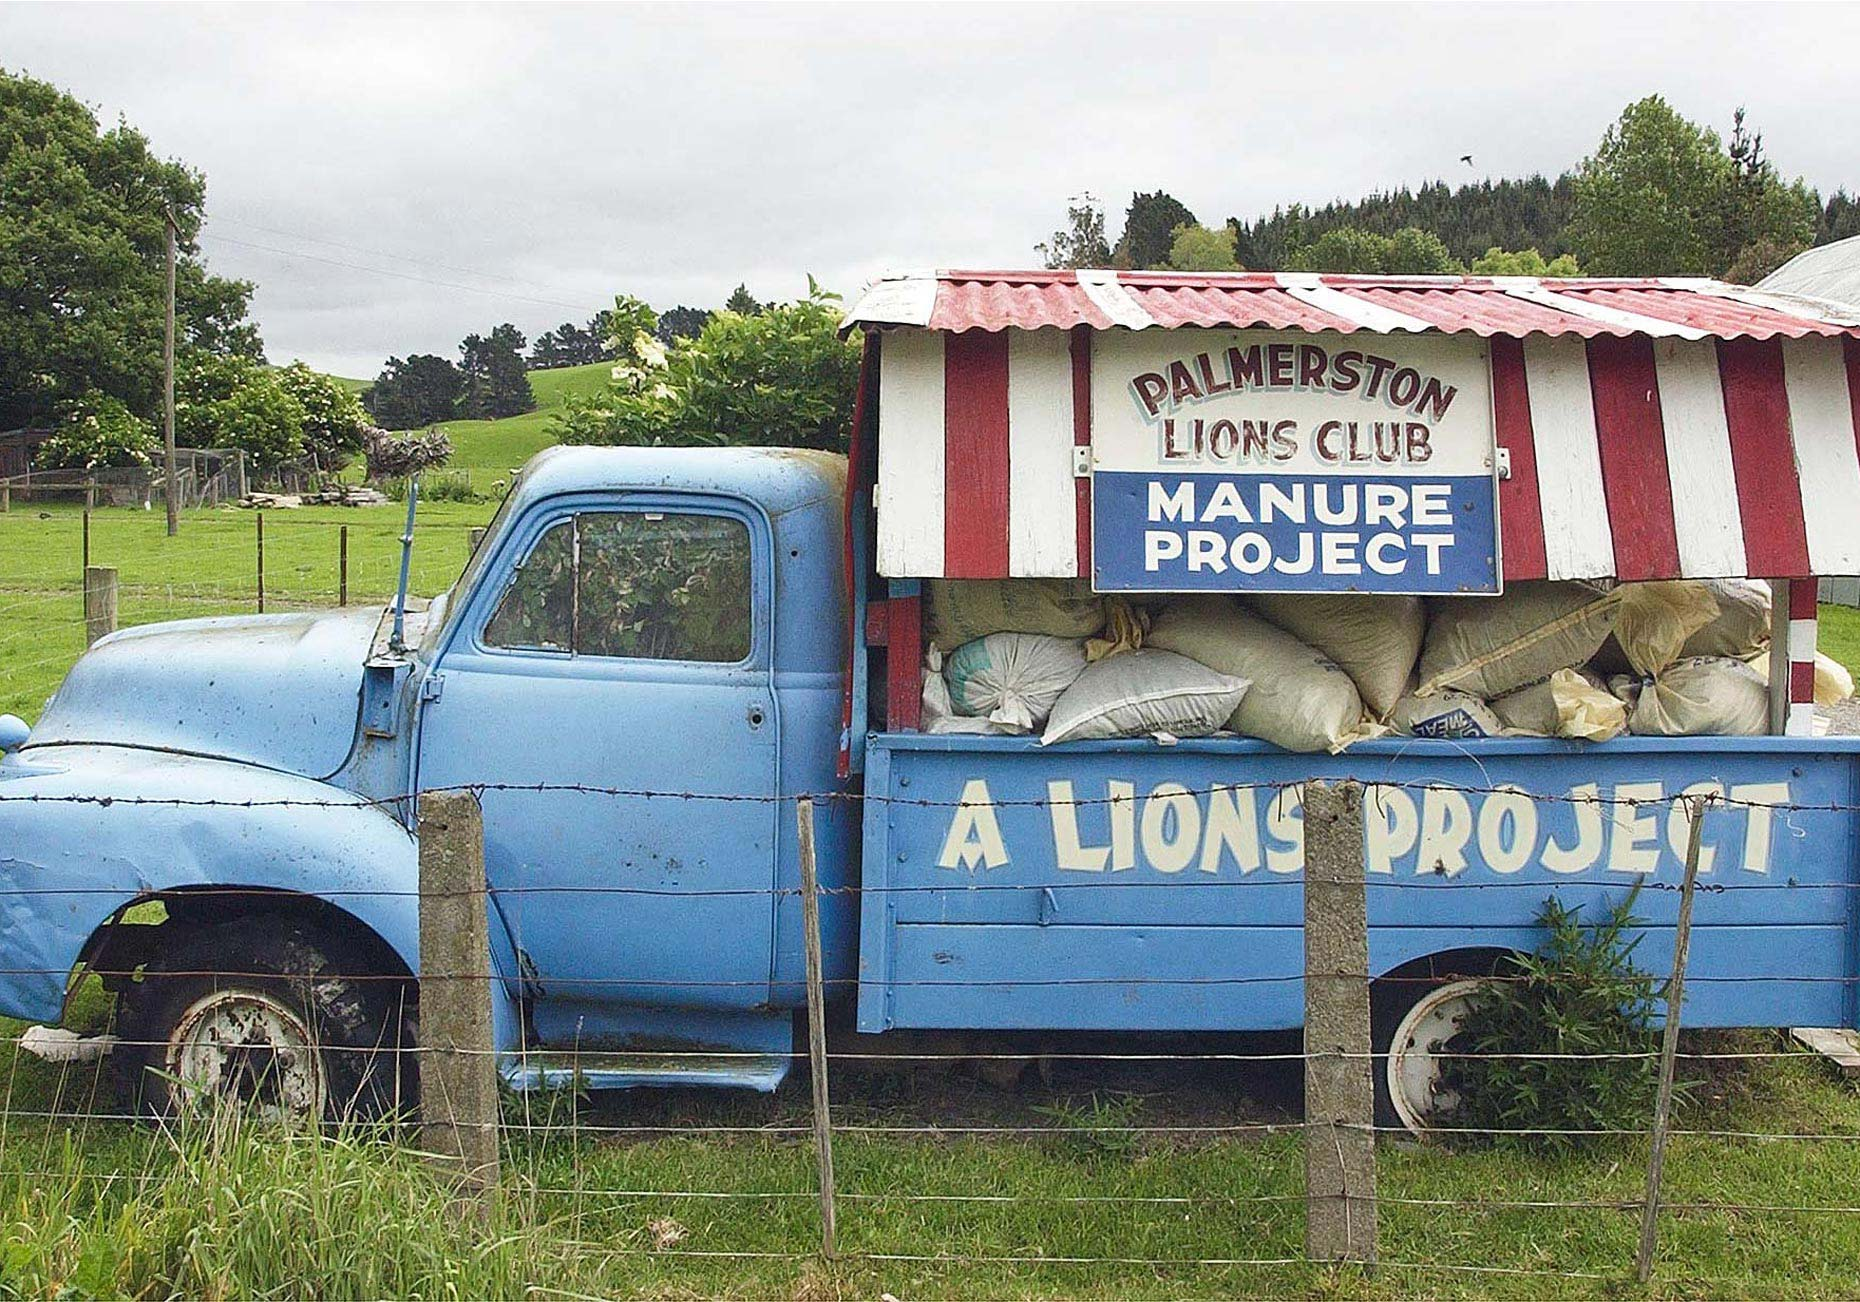 PAR_PhotoReporters_lions-manure-project_NZ